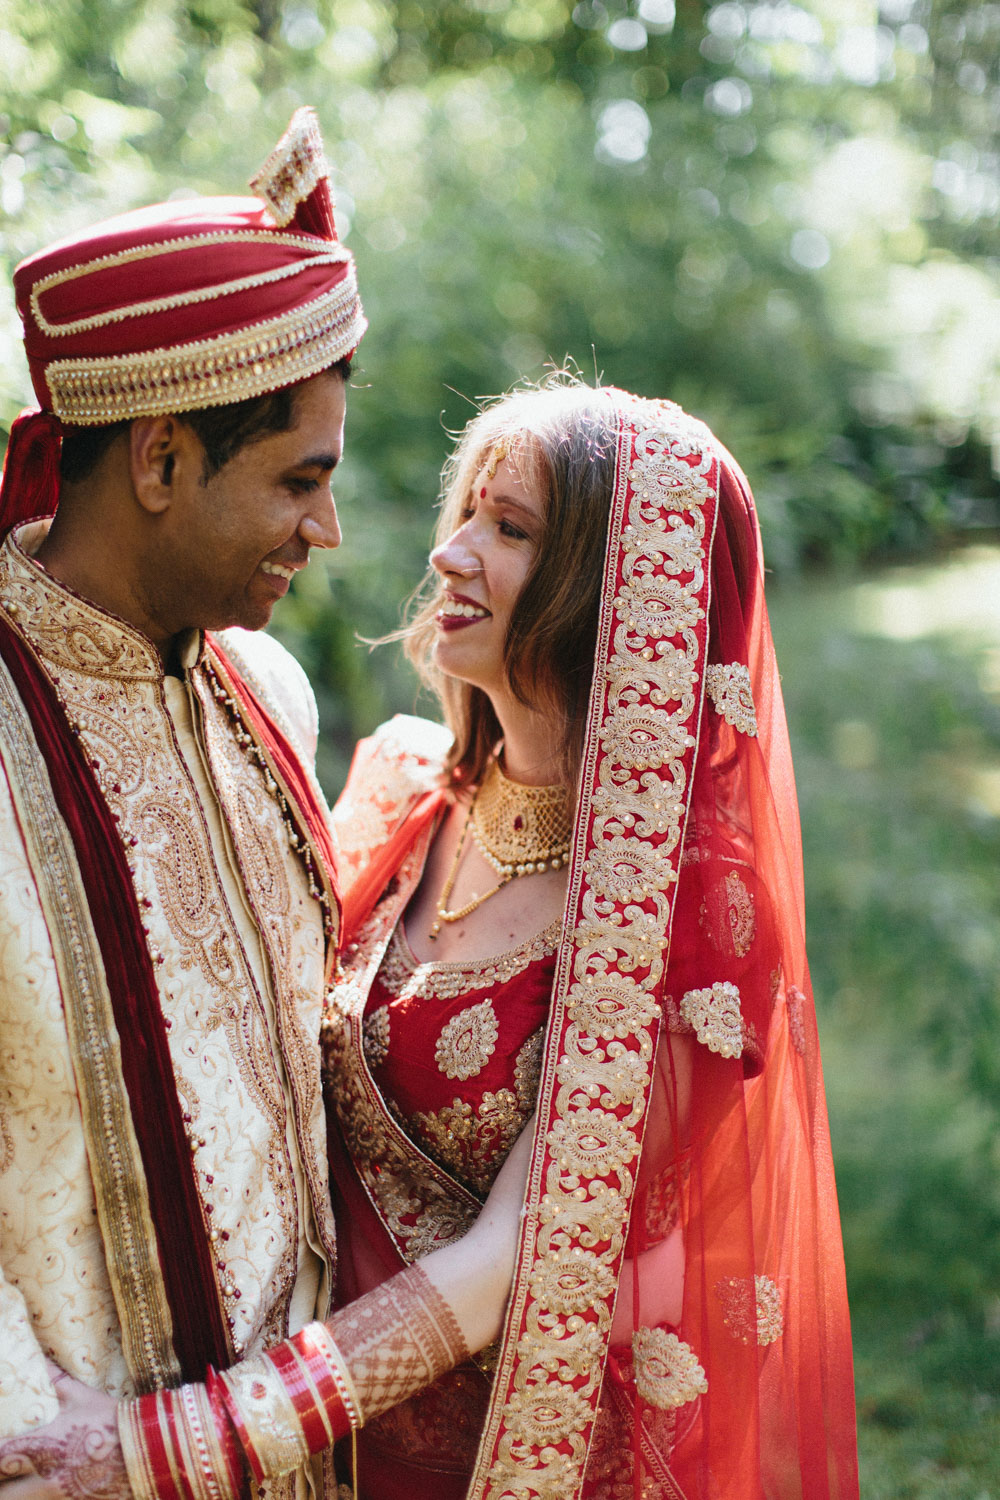 backyard_indian_wedding_roswell_atlanta_georgia_wedding_photographers-497.jpg